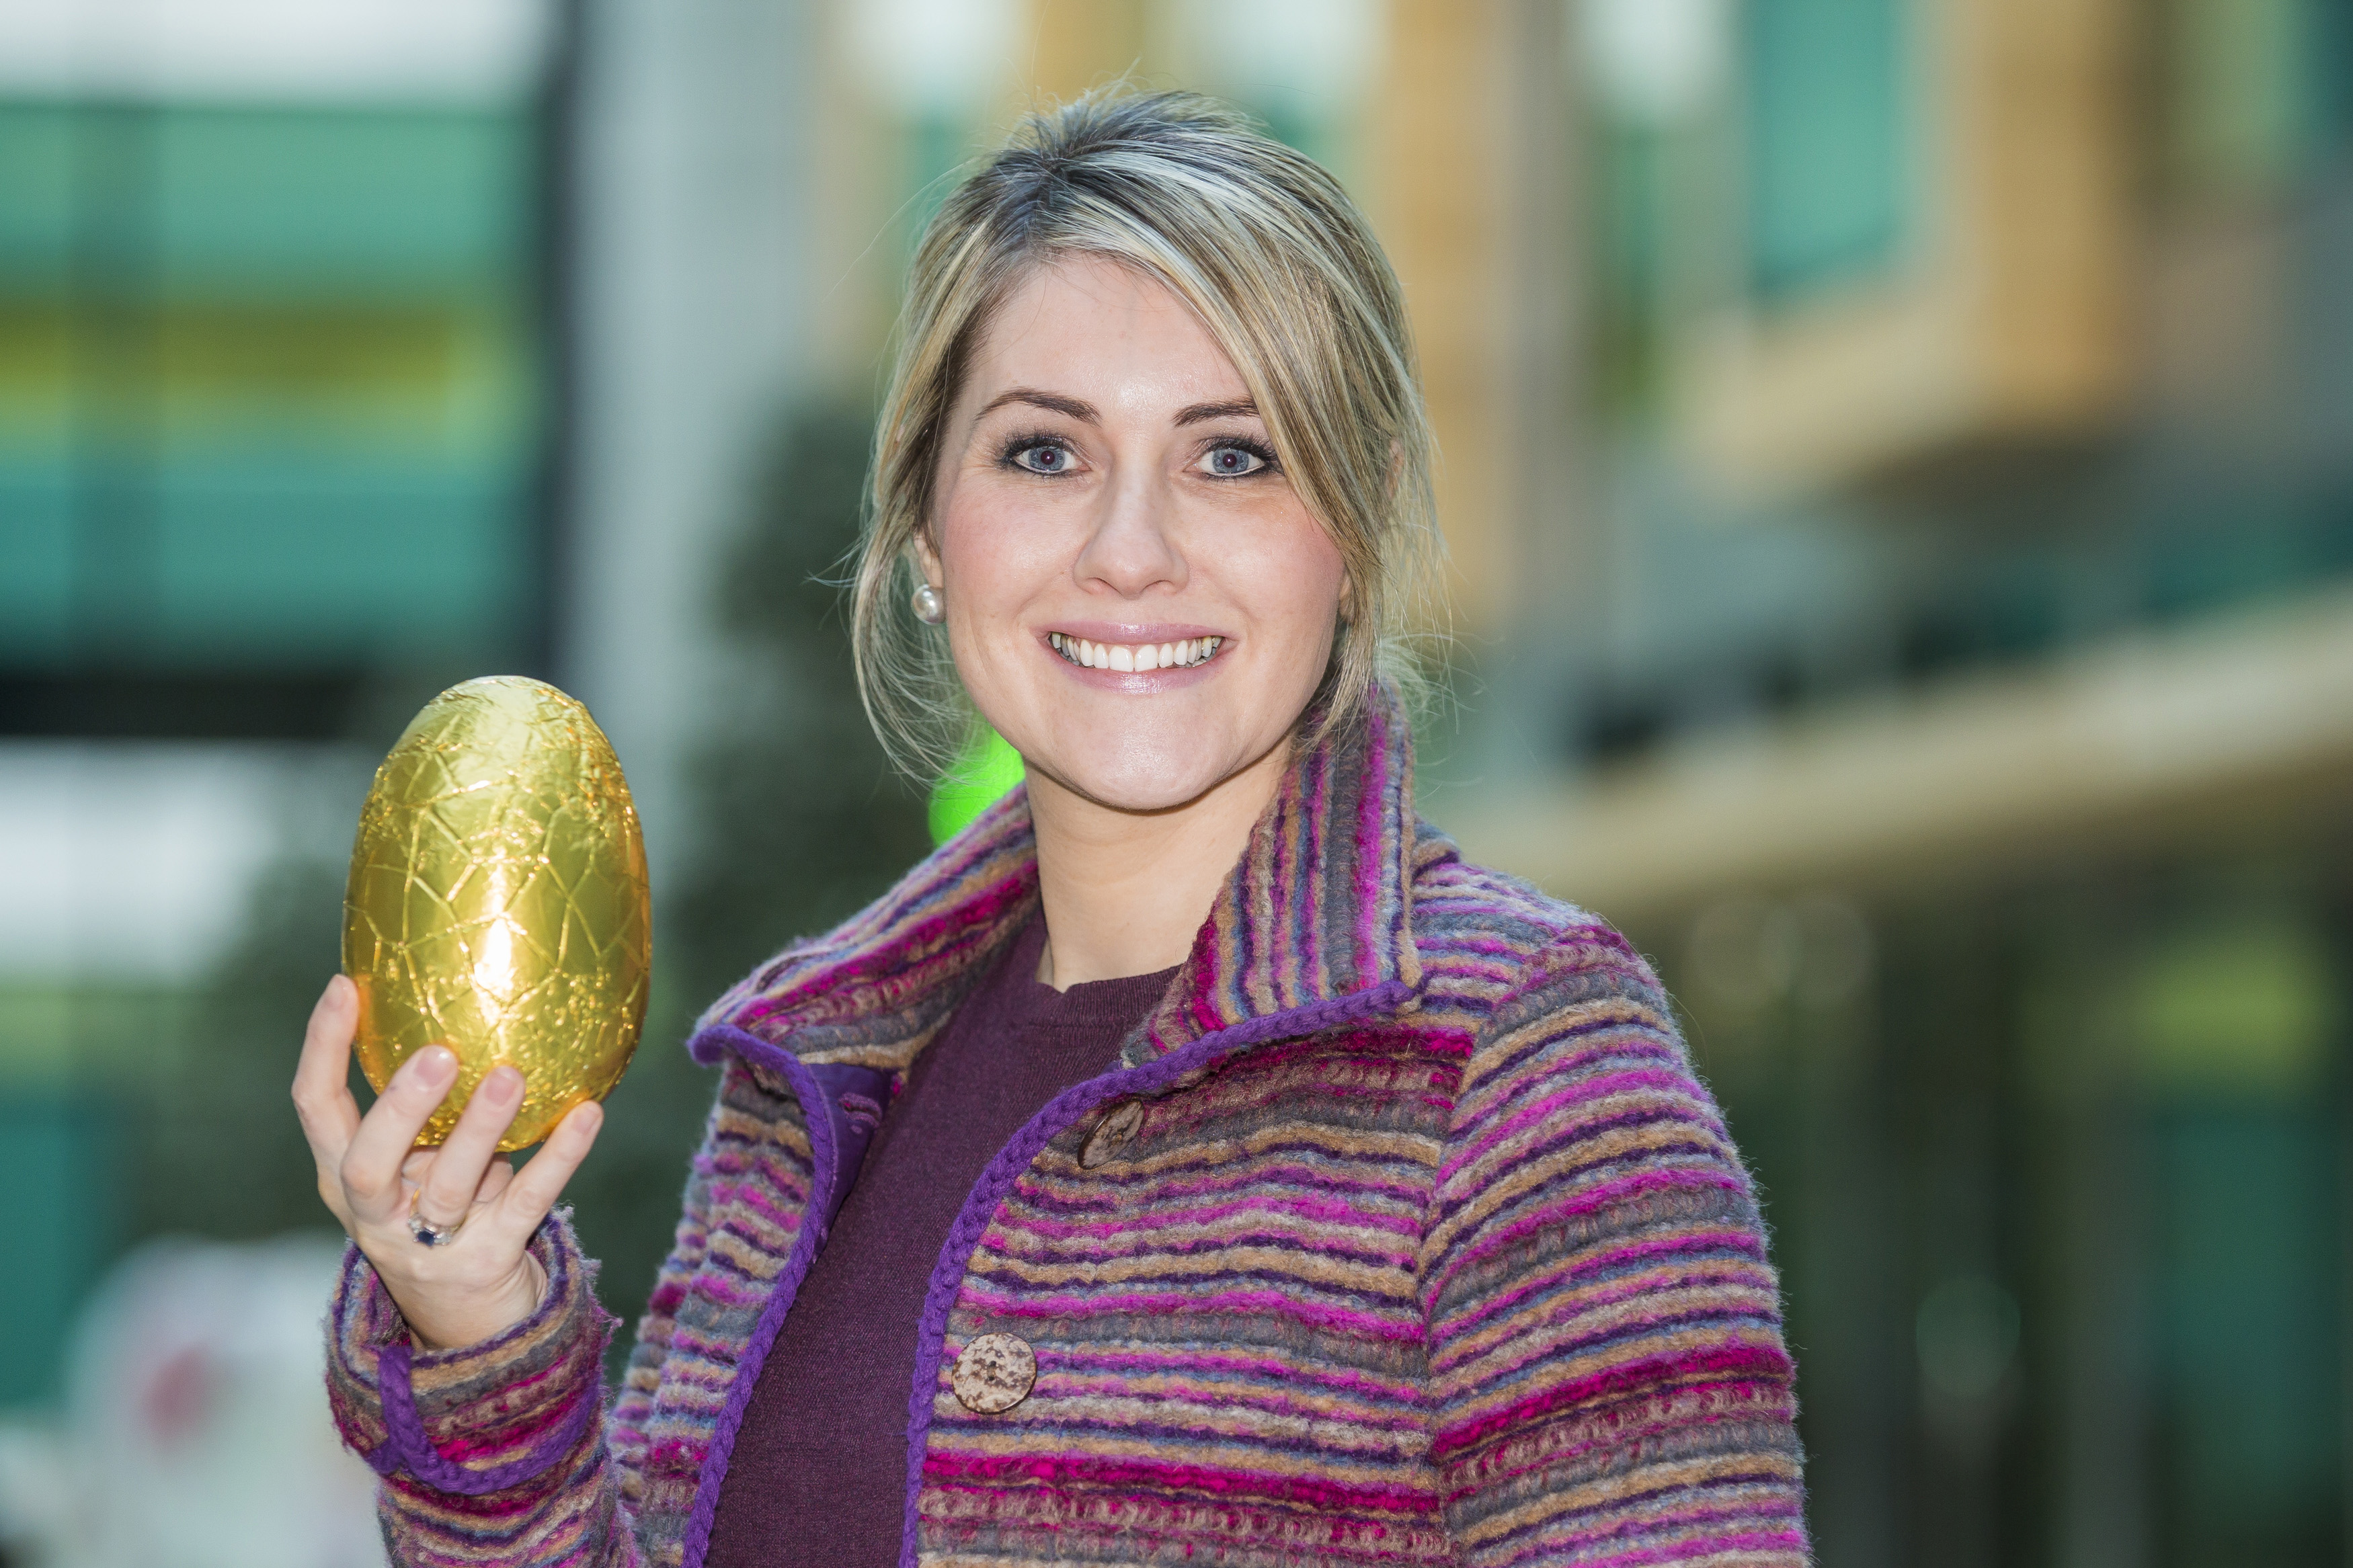 Death By Chocolate? Top 3 Tips for Surviving Easter